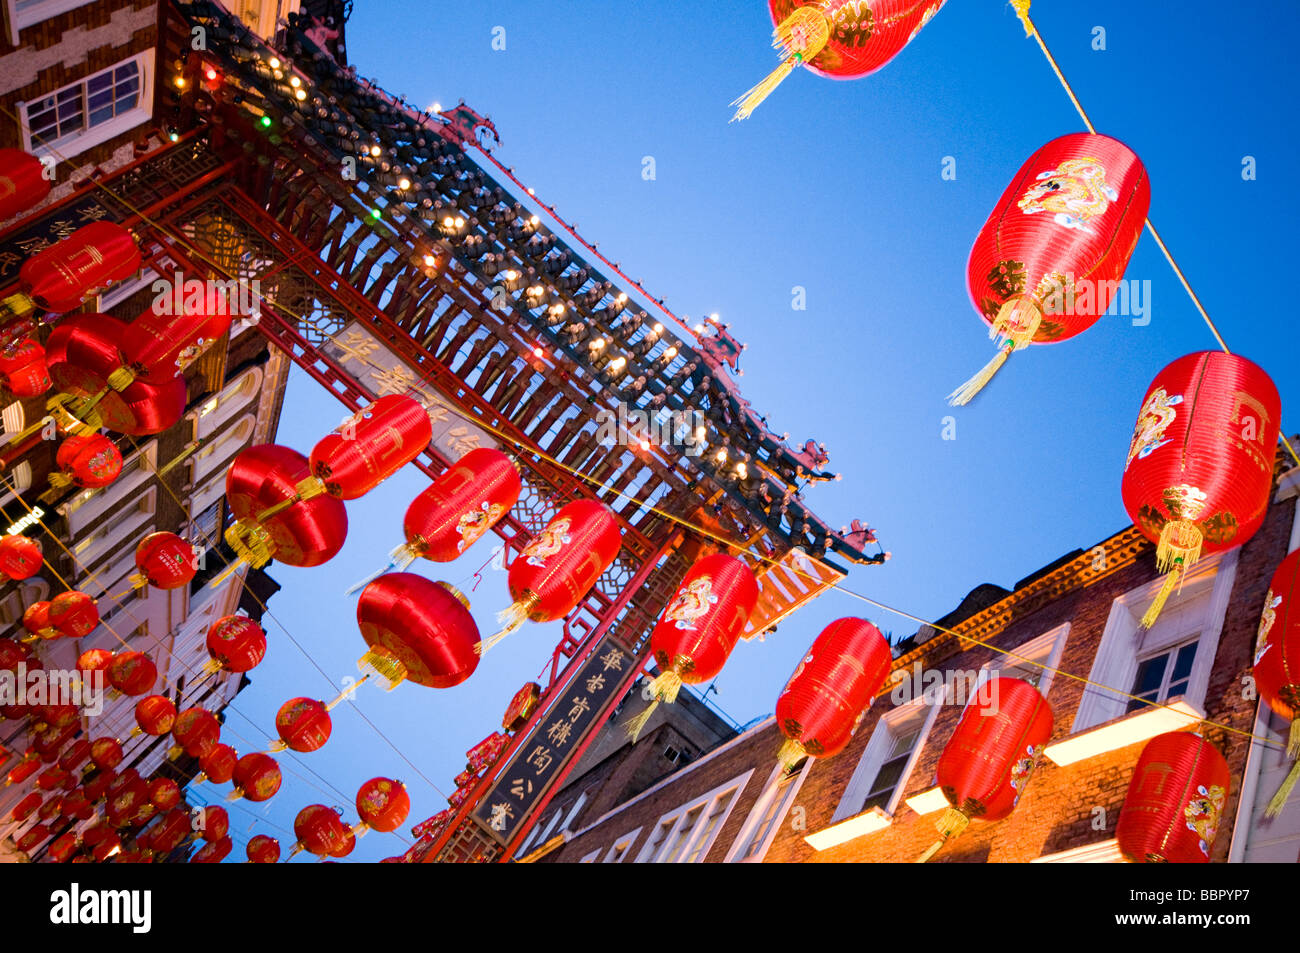 London Chinatown in the evening, decorated with red lanterns, UK - Stock Image